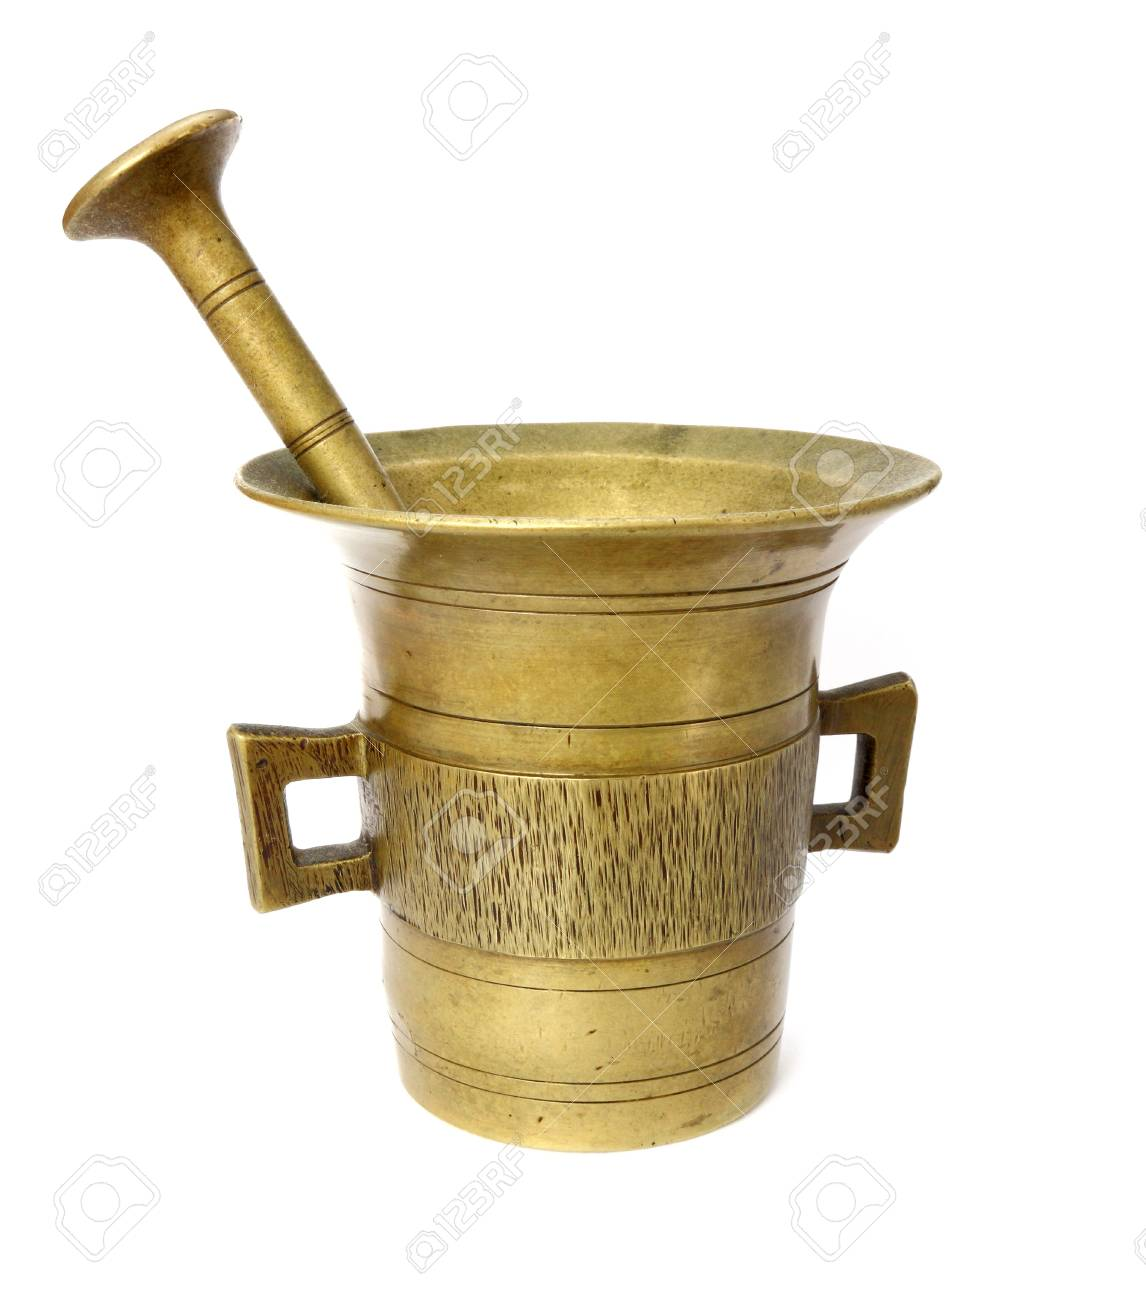 old brass container over white background Stock Photo - 14119241